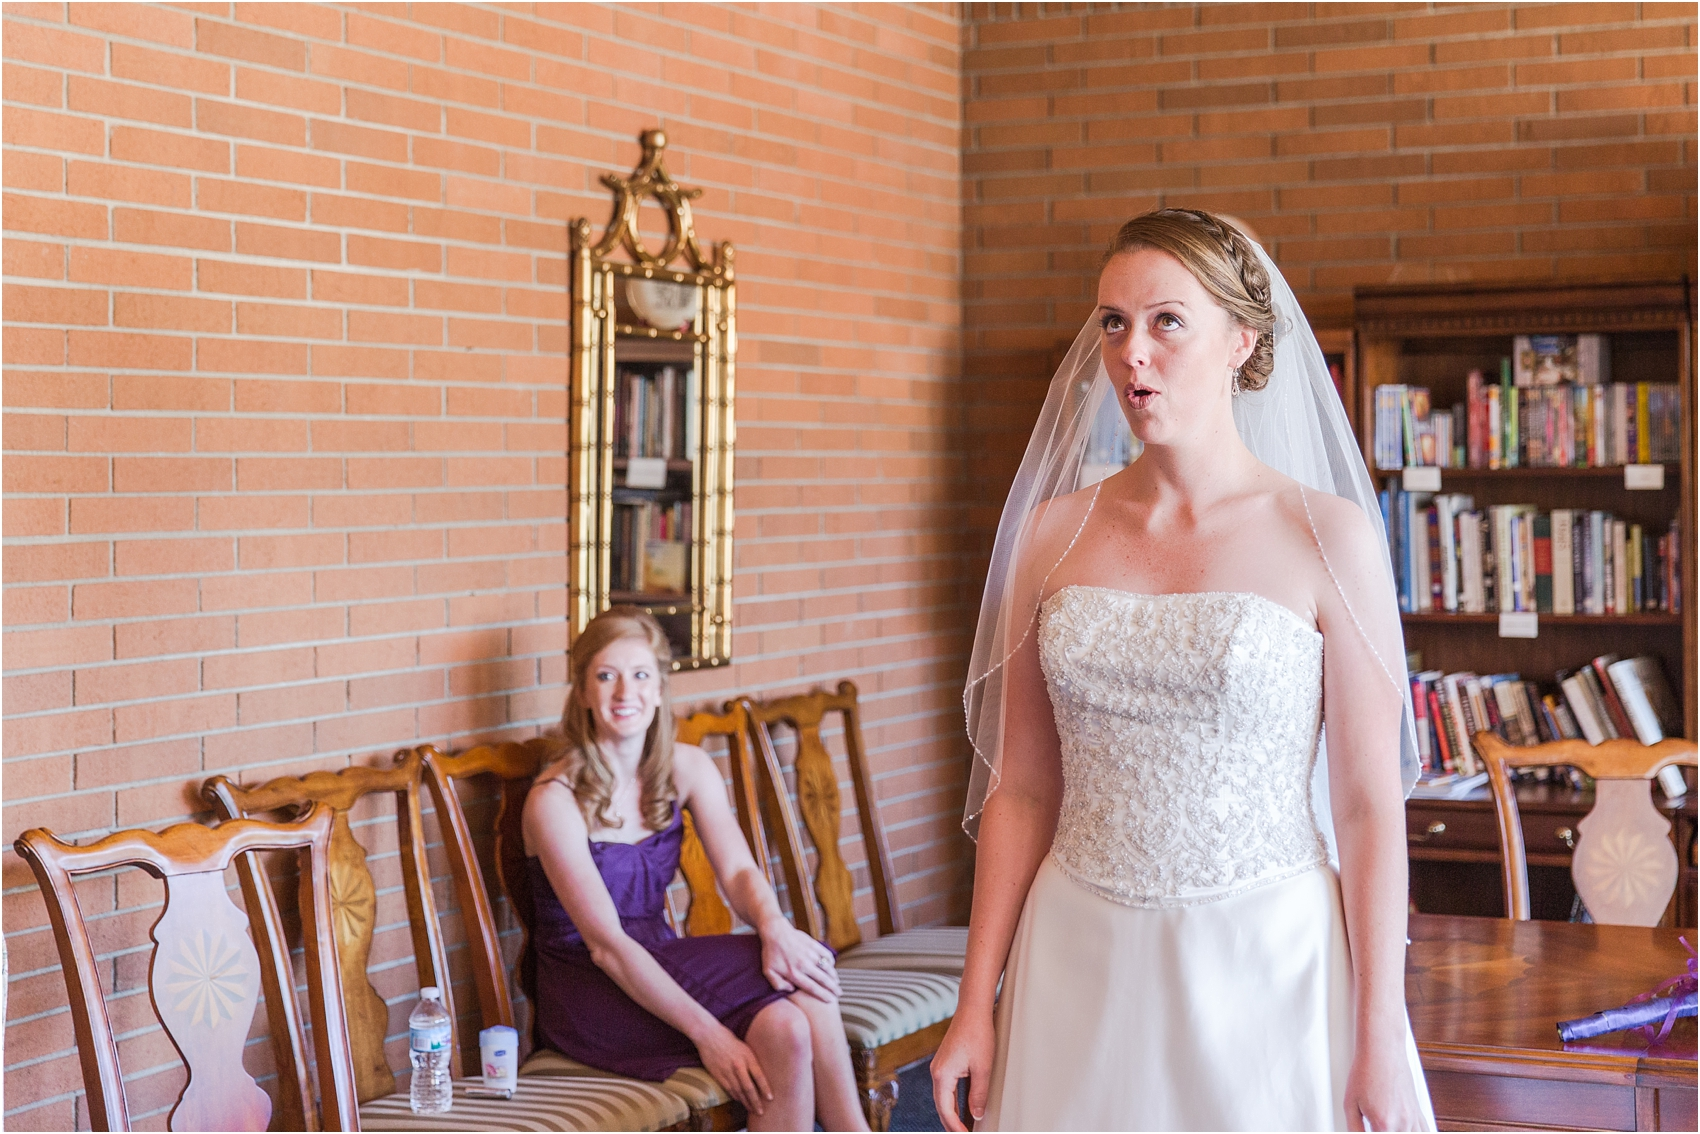 father-and-bride-share-emotional-first-look-on-wedding-day-photos-in-detroit-michigan-by-courtney-carolyn-photography_0026.jpg